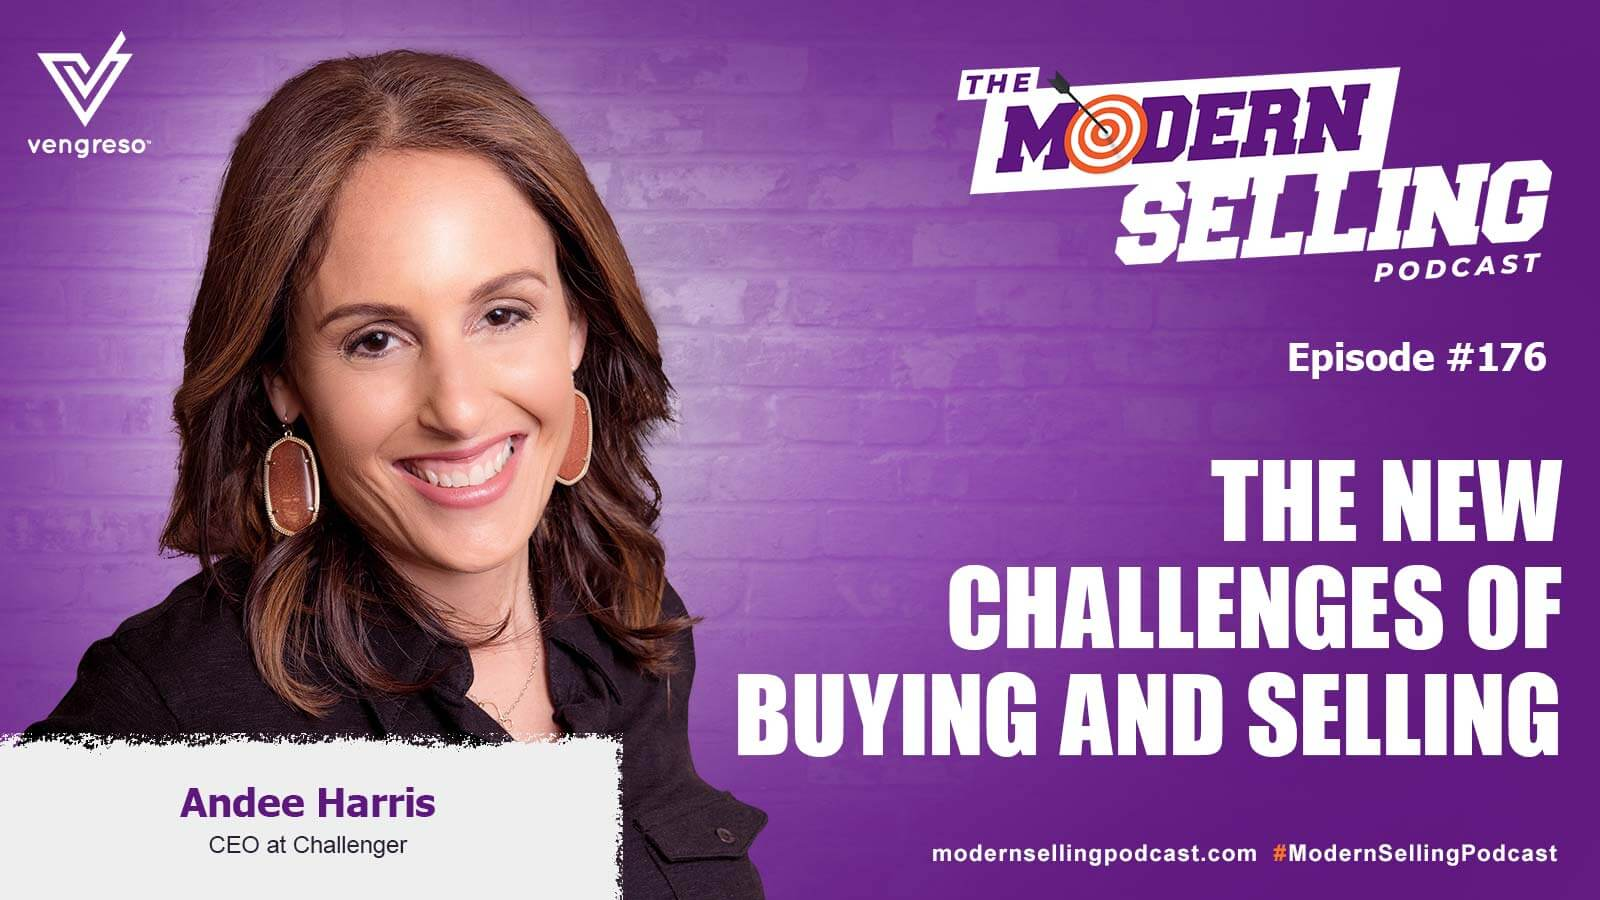 Buying and Selling New Challenges Podcast